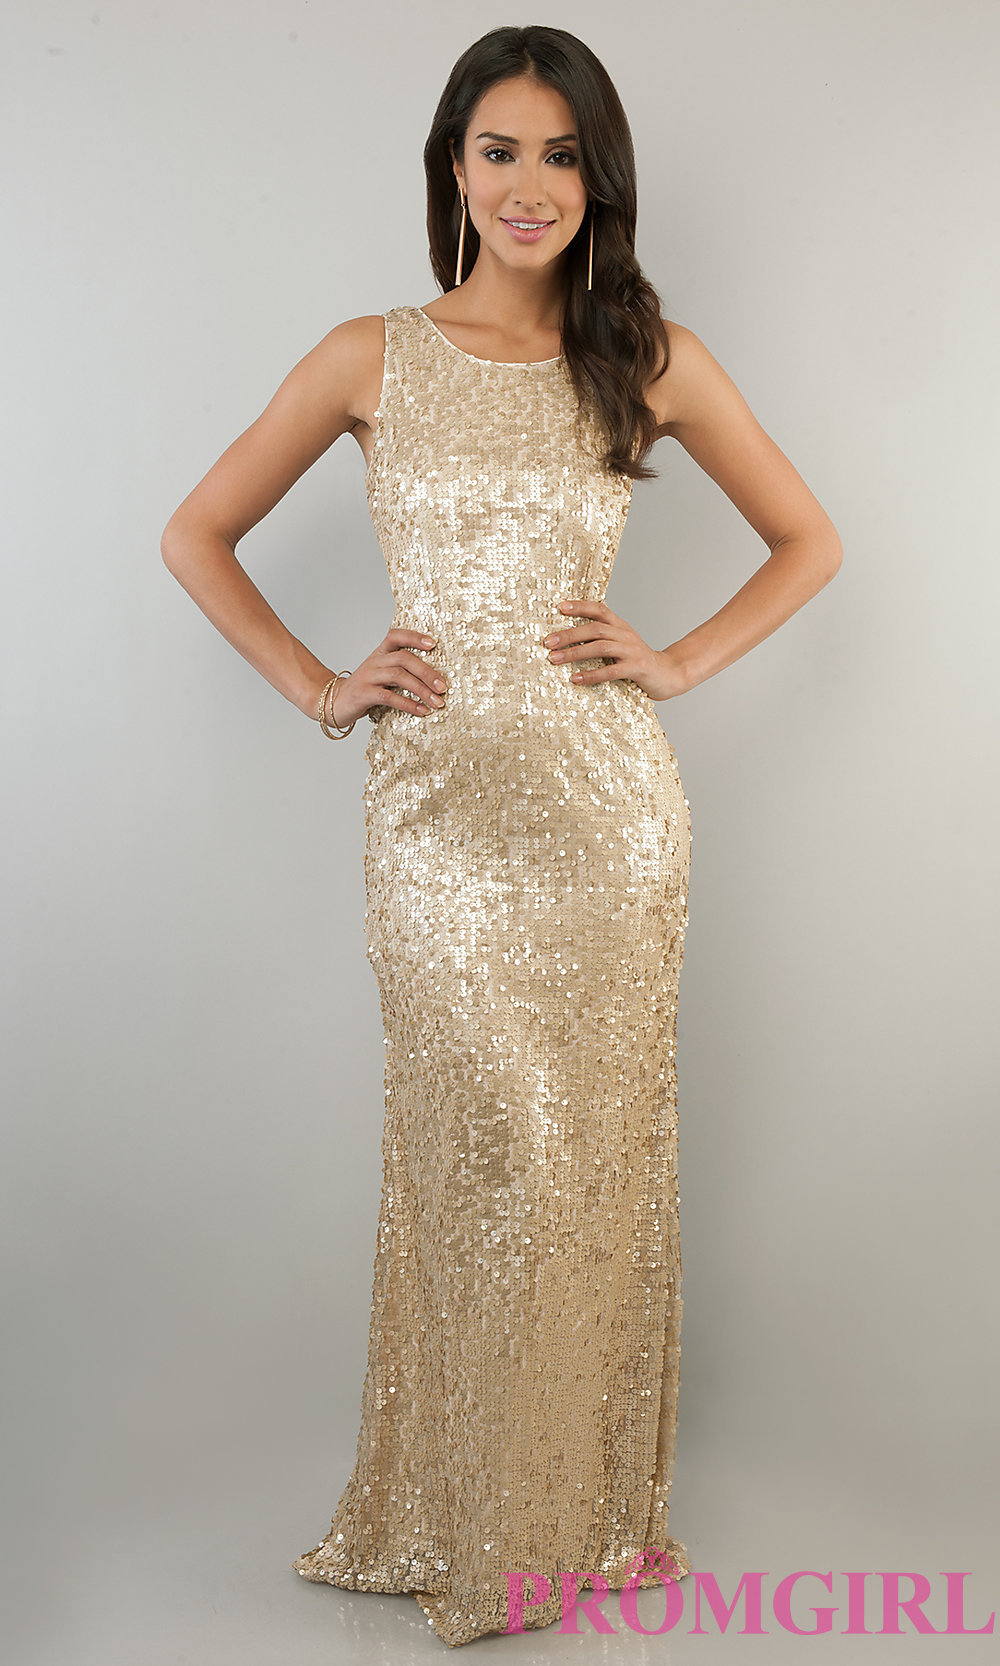 Formal Dresses Sparkly - Clothing Brand Reviews